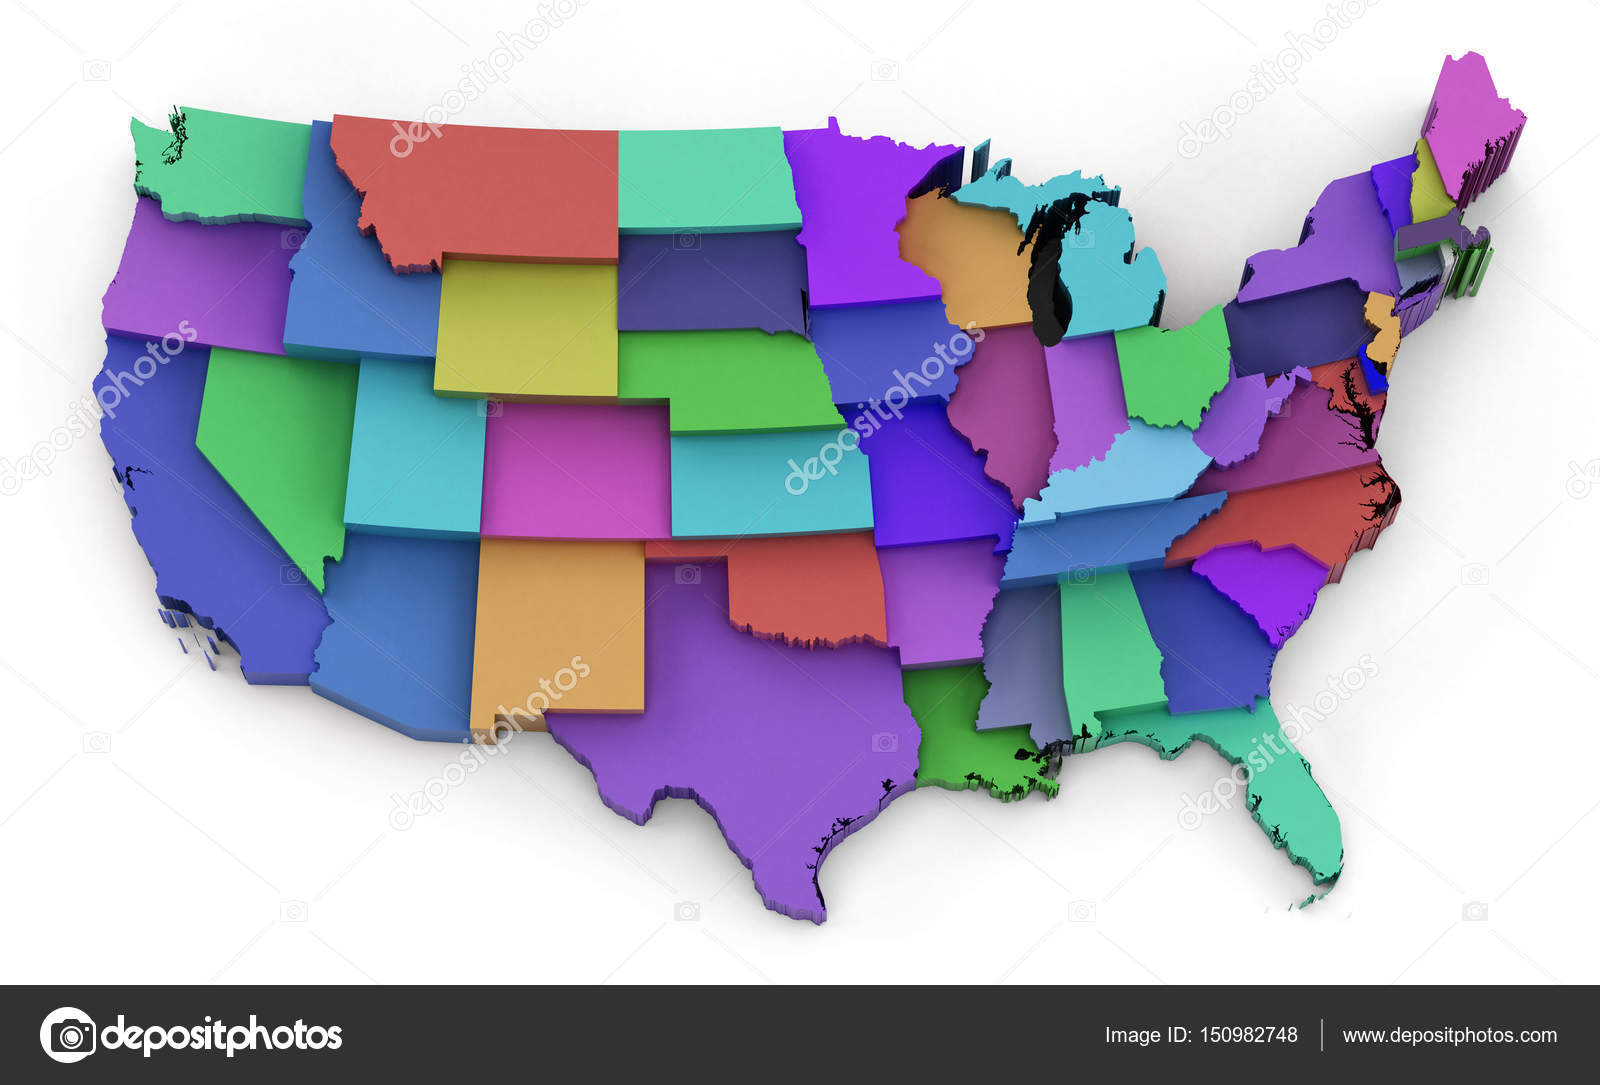 Multi colored USA map showing state borders 3D illustration